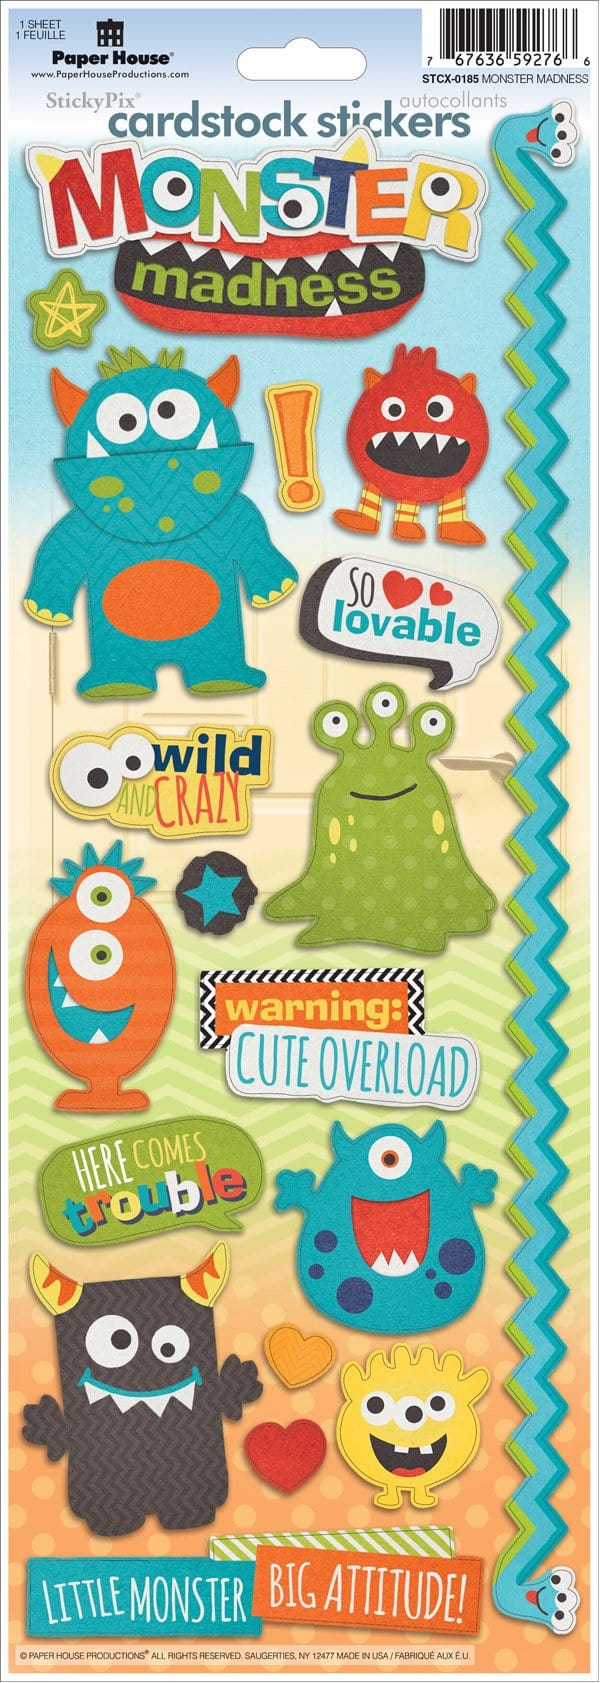 Monster Madness Cardstock Stickers